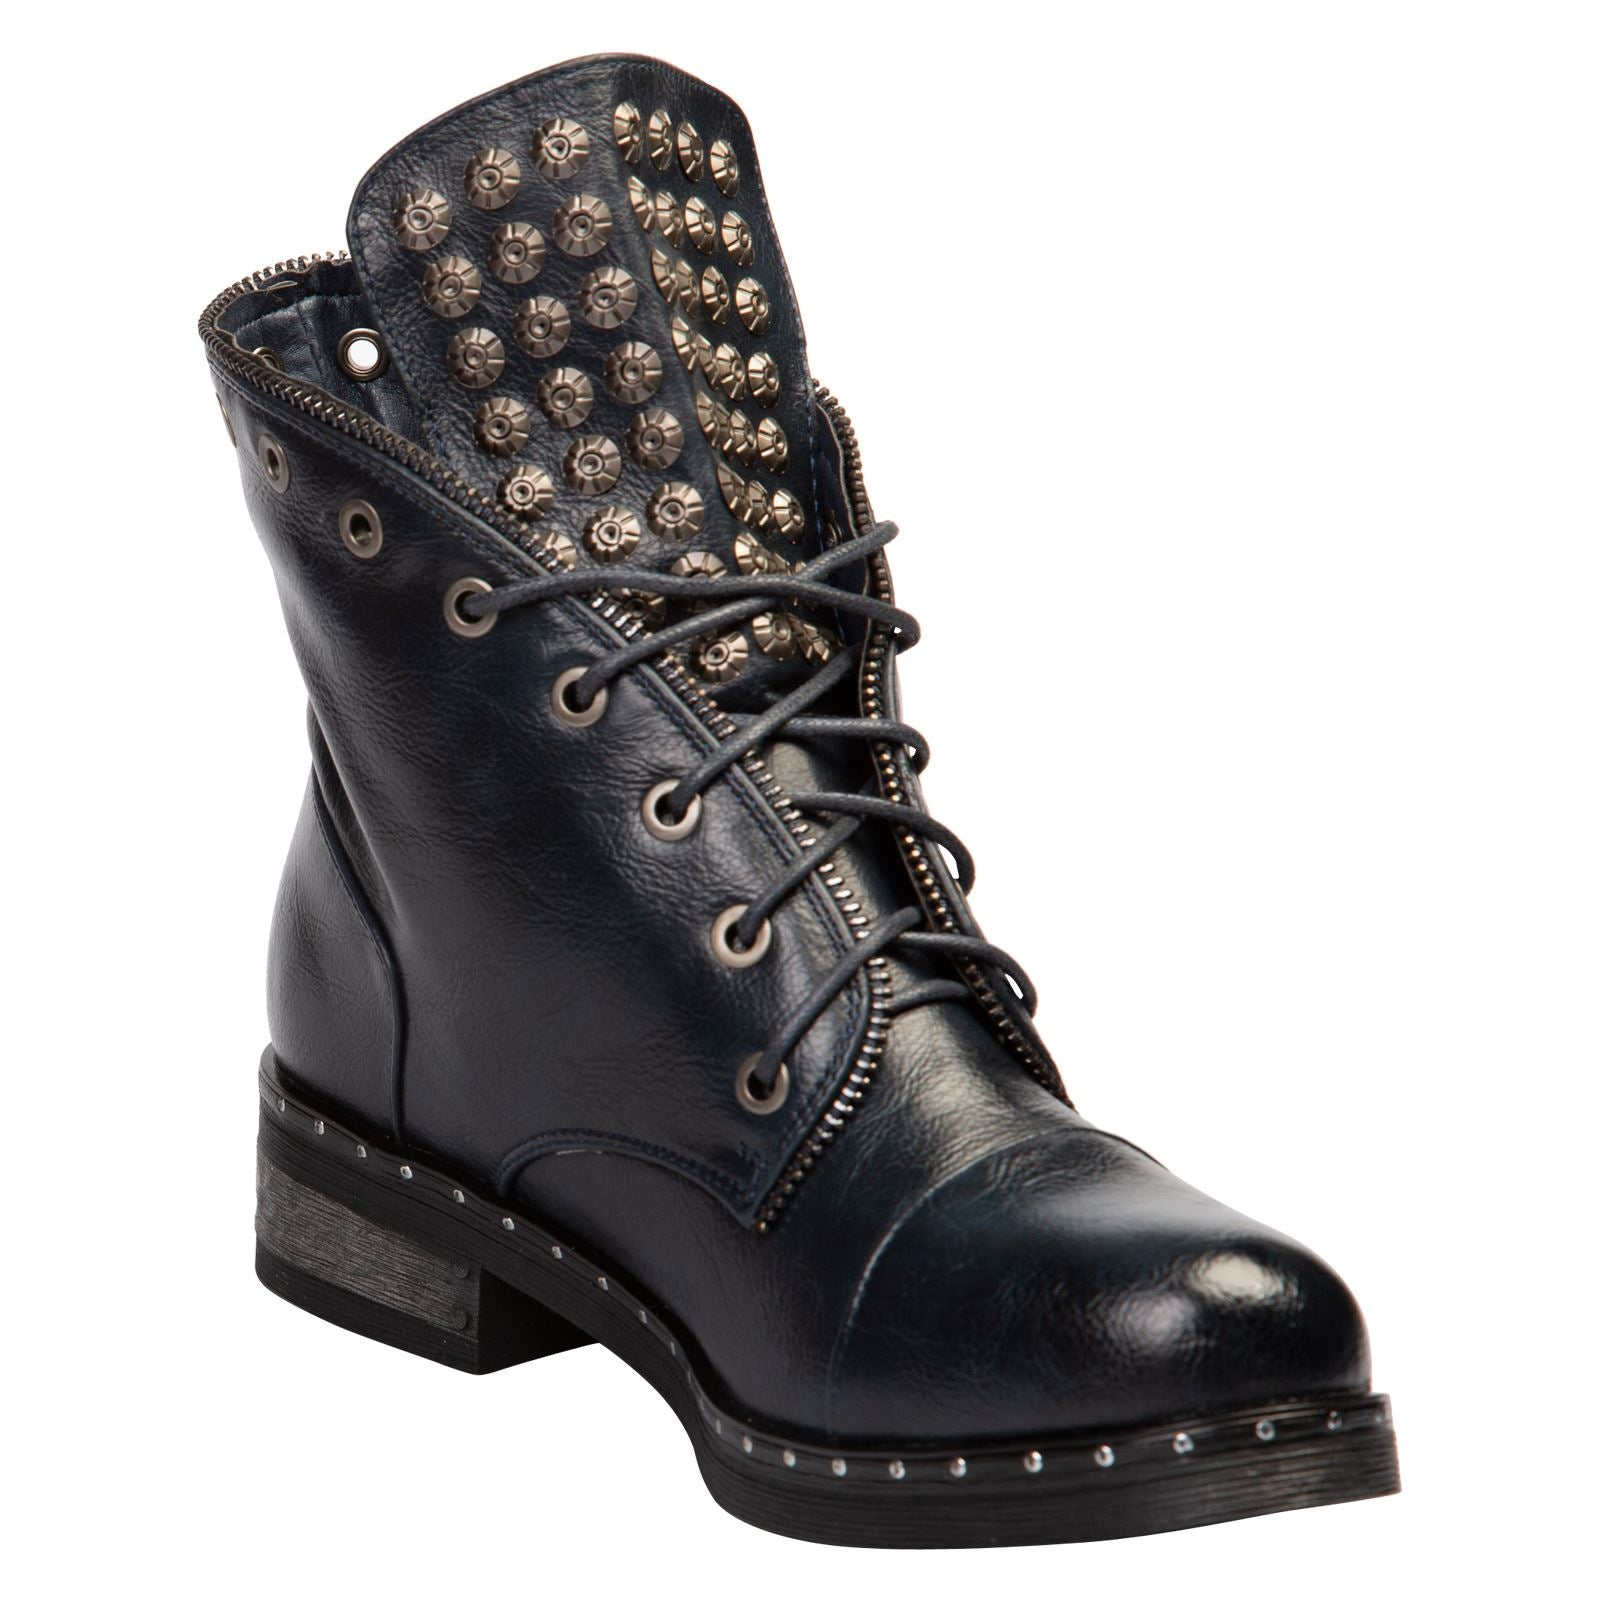 Finley Studded Ankle Boots in Navy Blue Faux Leather - Feet First Fashion